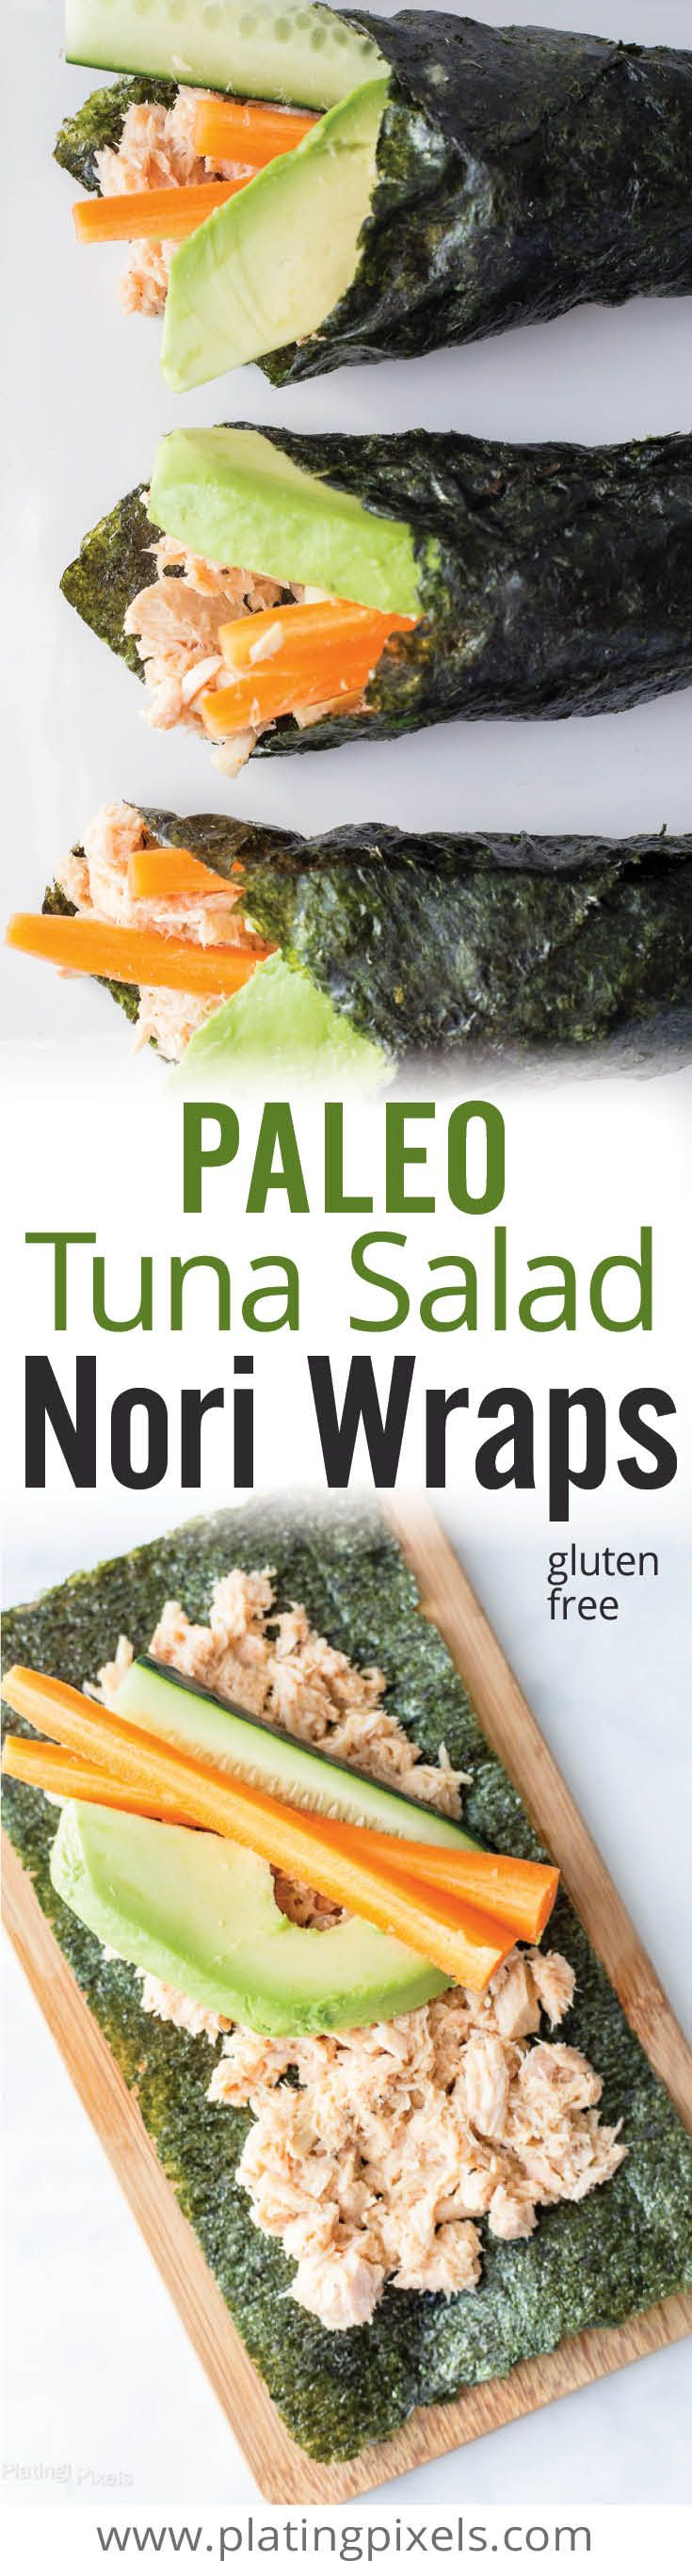 Quick and healthy gluten free paleo tuna salad nori wraps. Albacore tuna, coconut milk, olive oil, lemon juice, avocado, carrot and cucumber on nori roll for a gluten free healthy snack or meal prep. - www.platingpixels.com